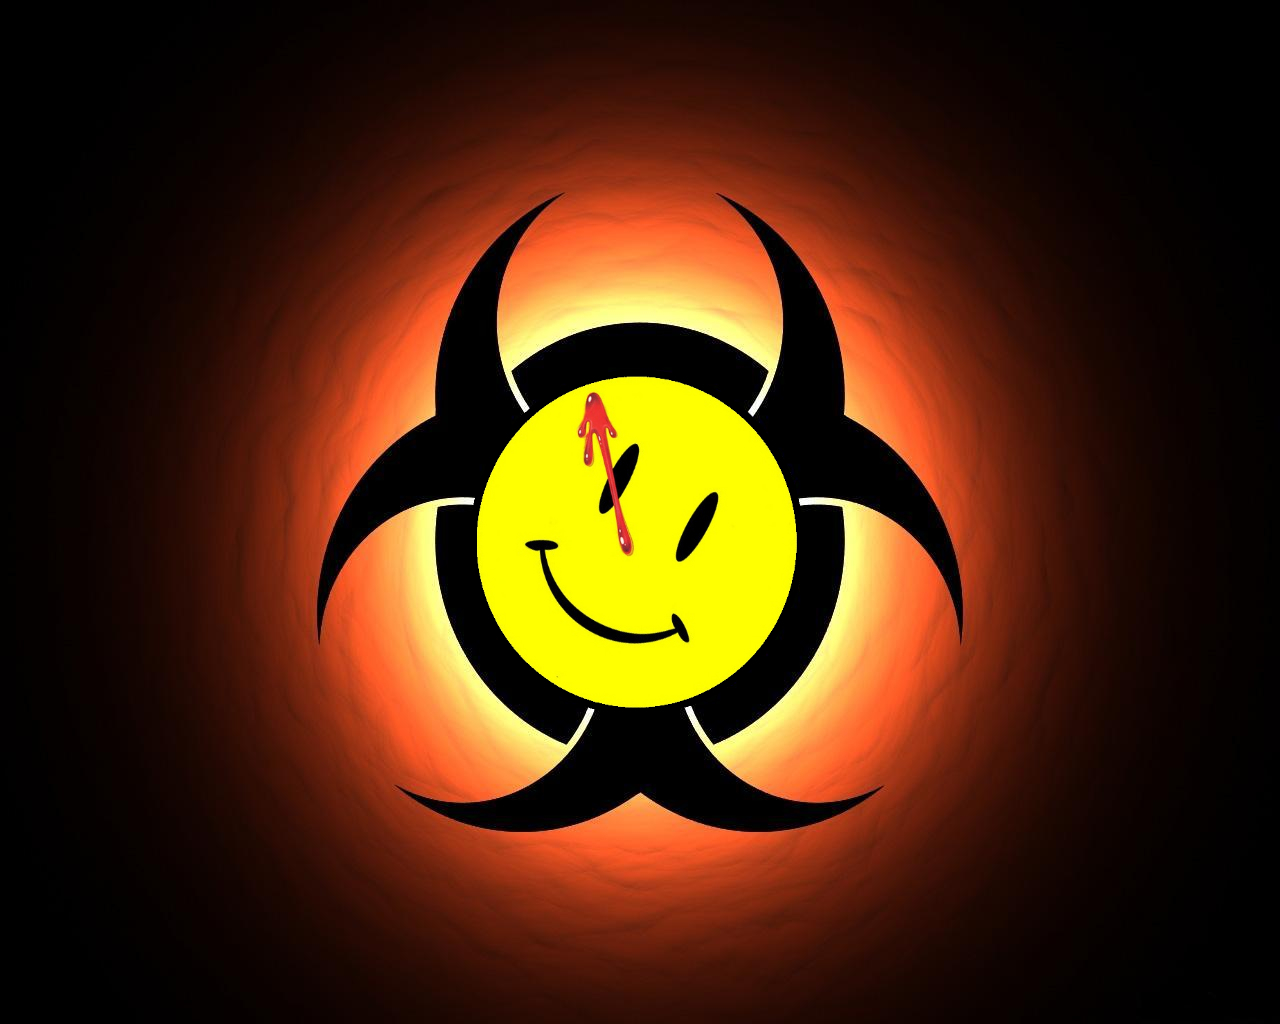 Movie Watchmen Nuclear smiley HD Wallpaper